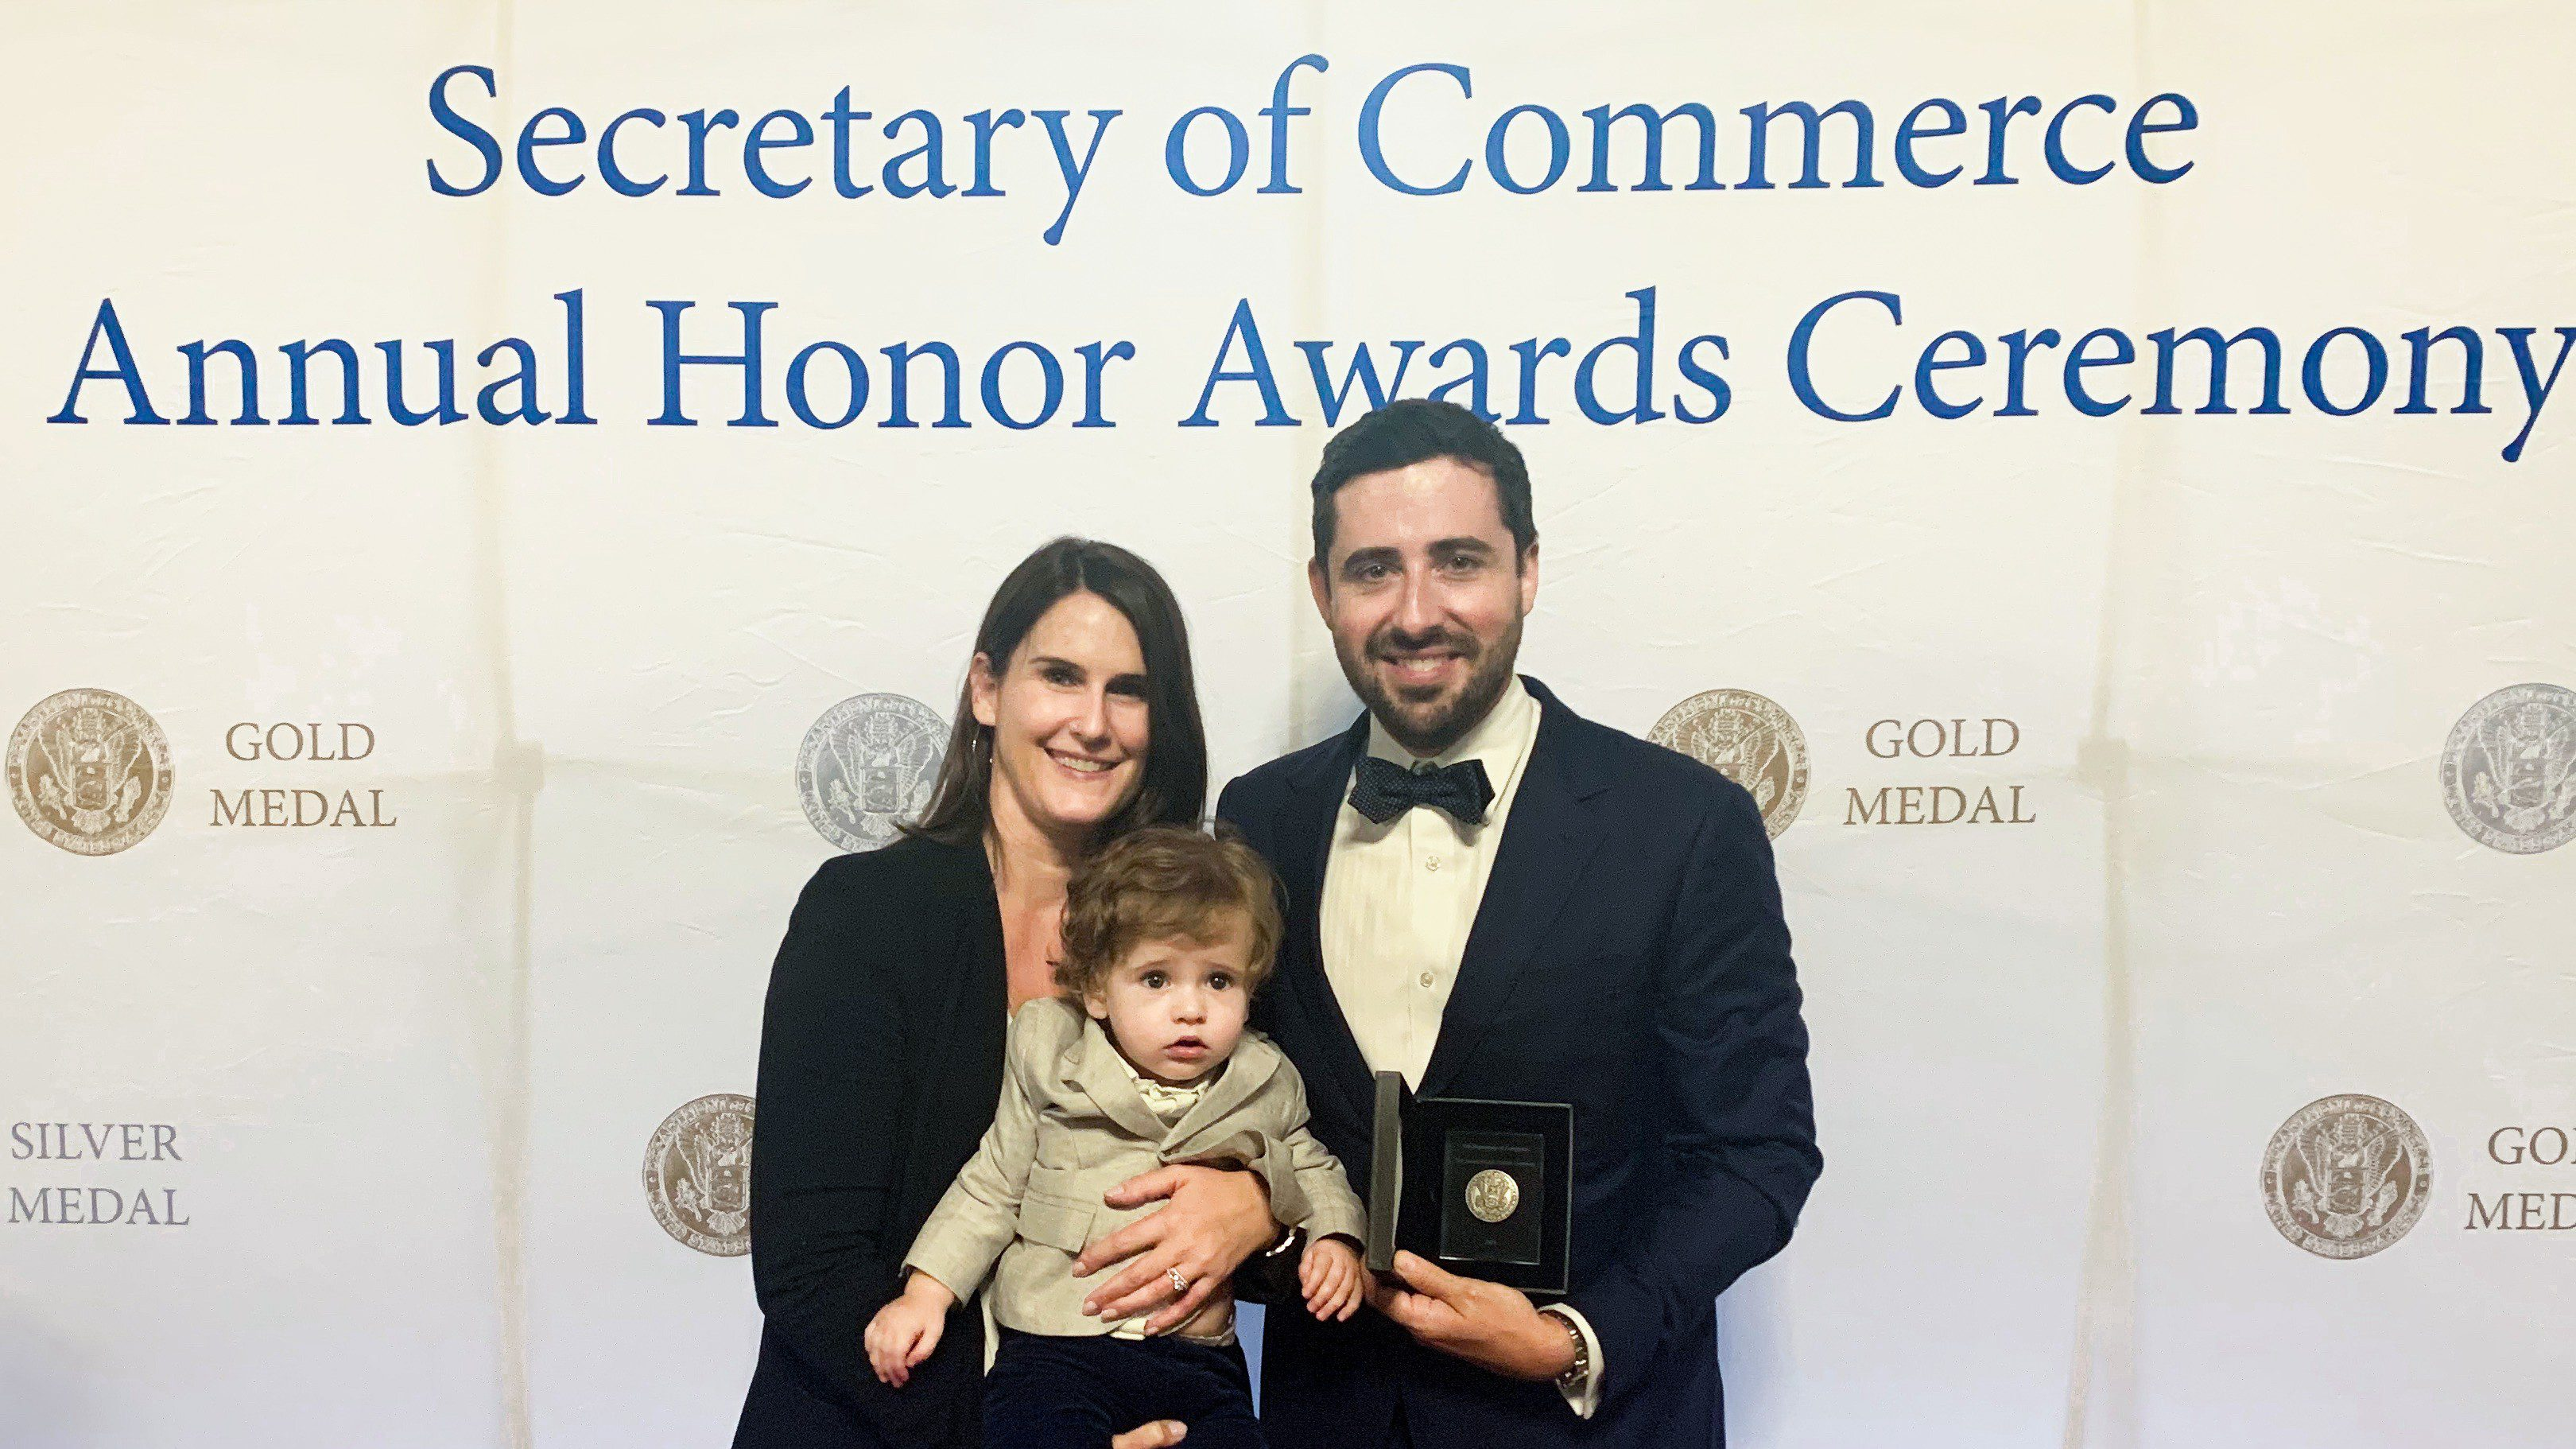 Ian Enochs, pictured with his wife and son, awarded with the DOC Silver Medal Award.